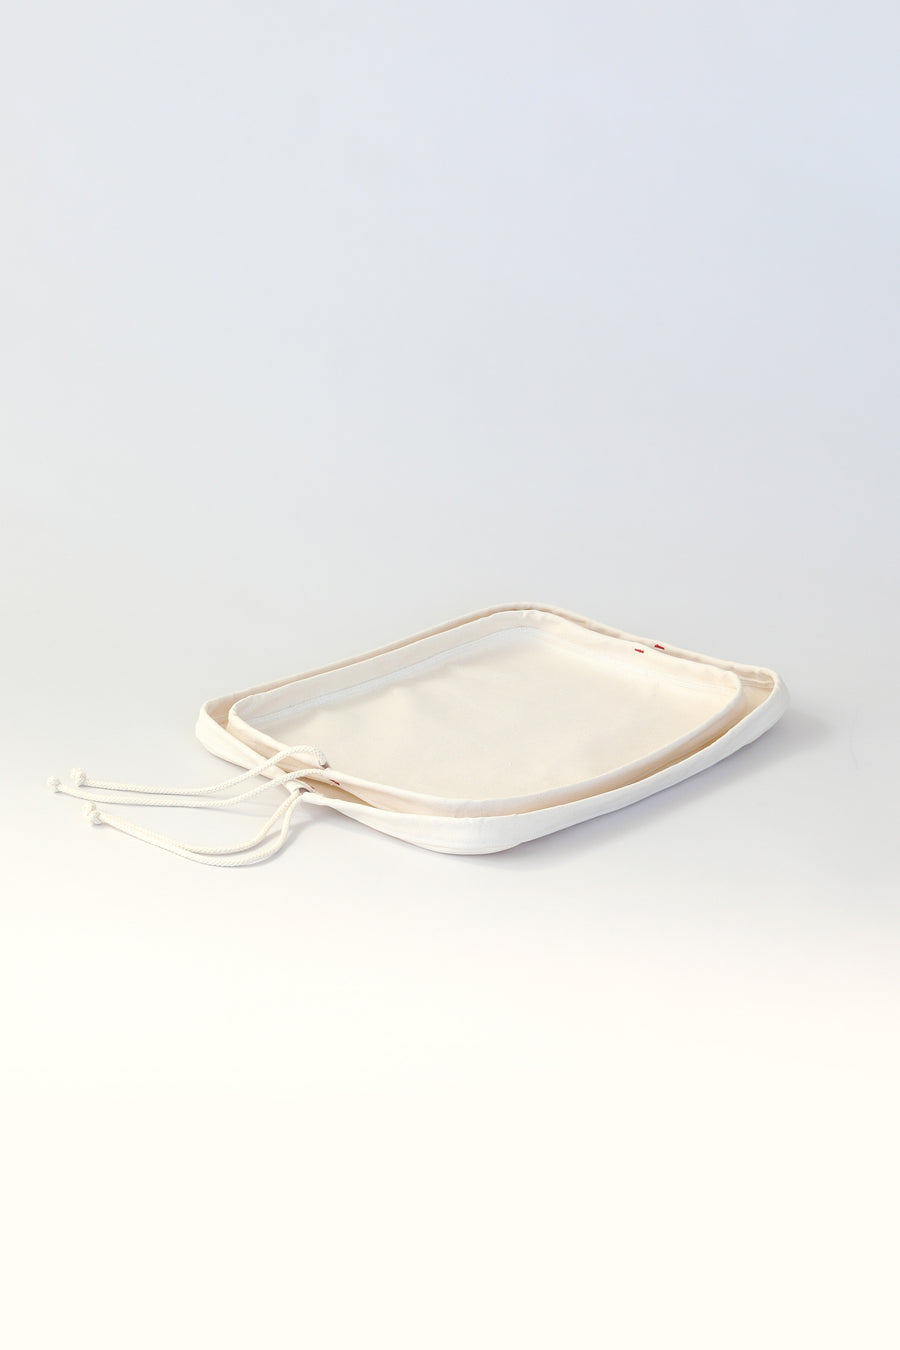 Couvre-Plat Pan Covers Kit